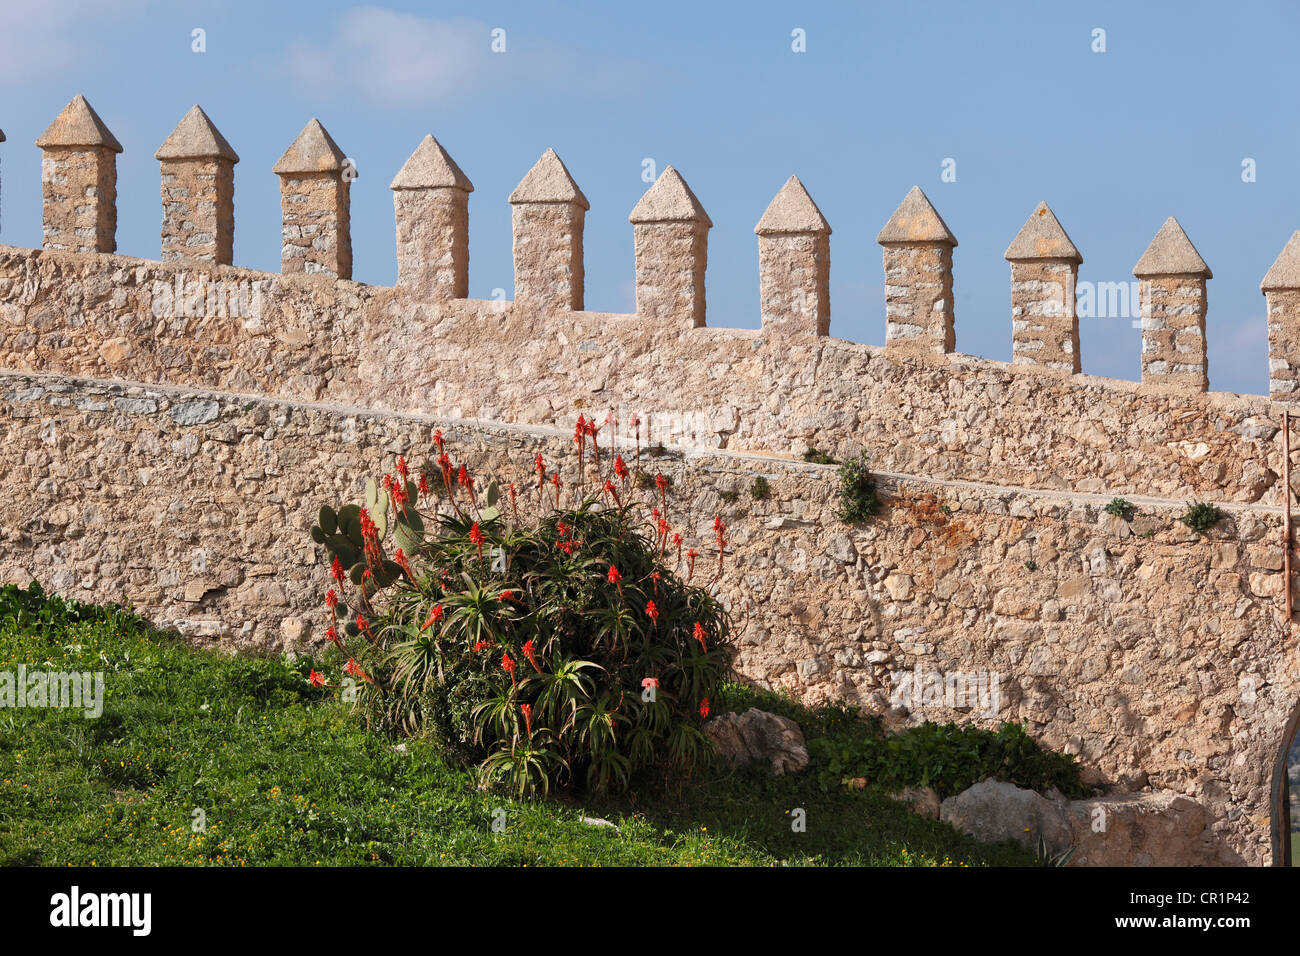 Defensive wall of the castle, Arta, Majorca, Balearic Islands, Spain, Europe - Stock Image